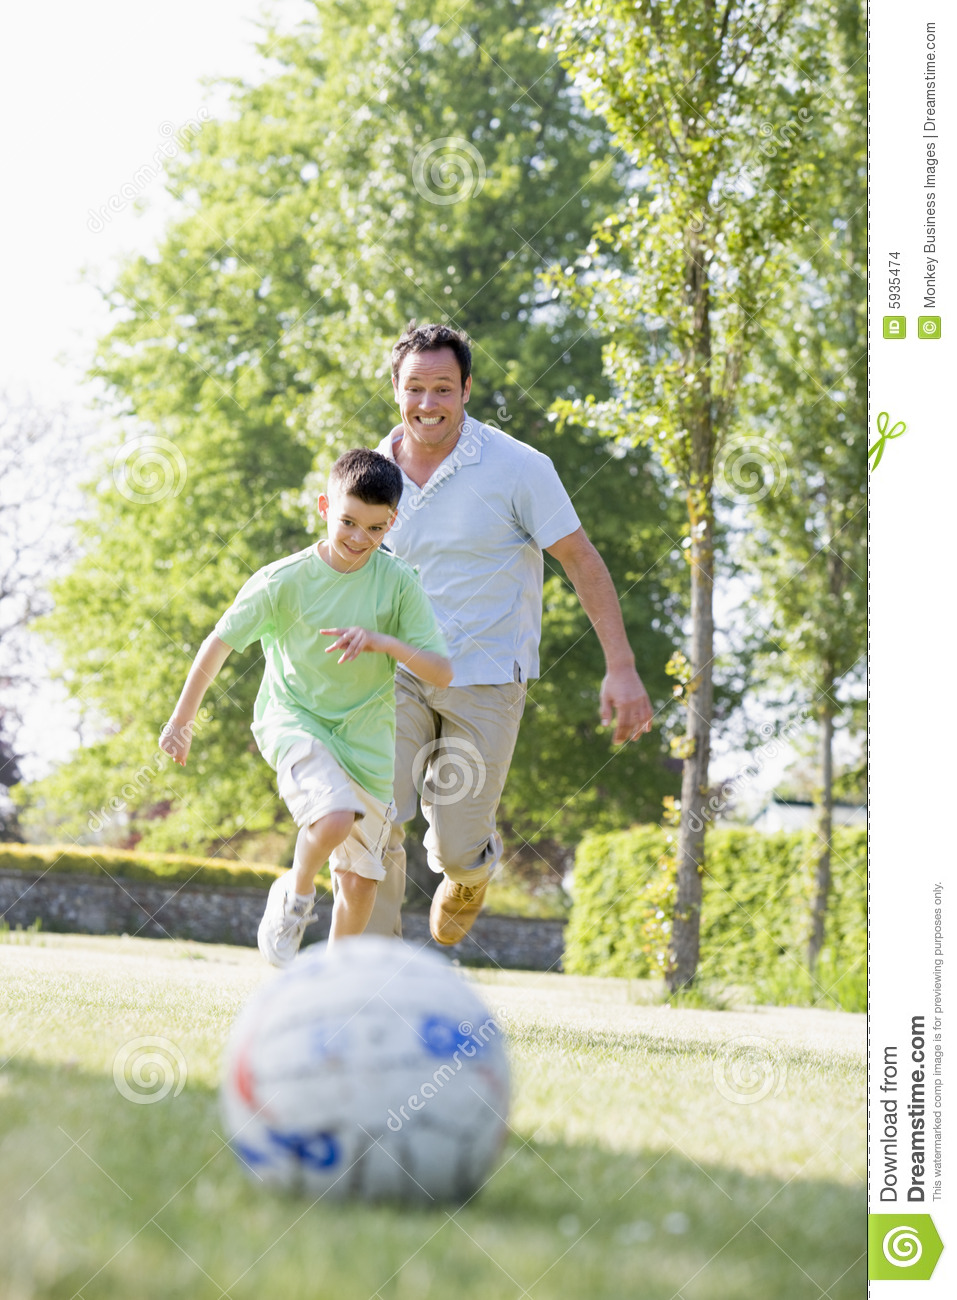 Boy man outdoors playing soccer young